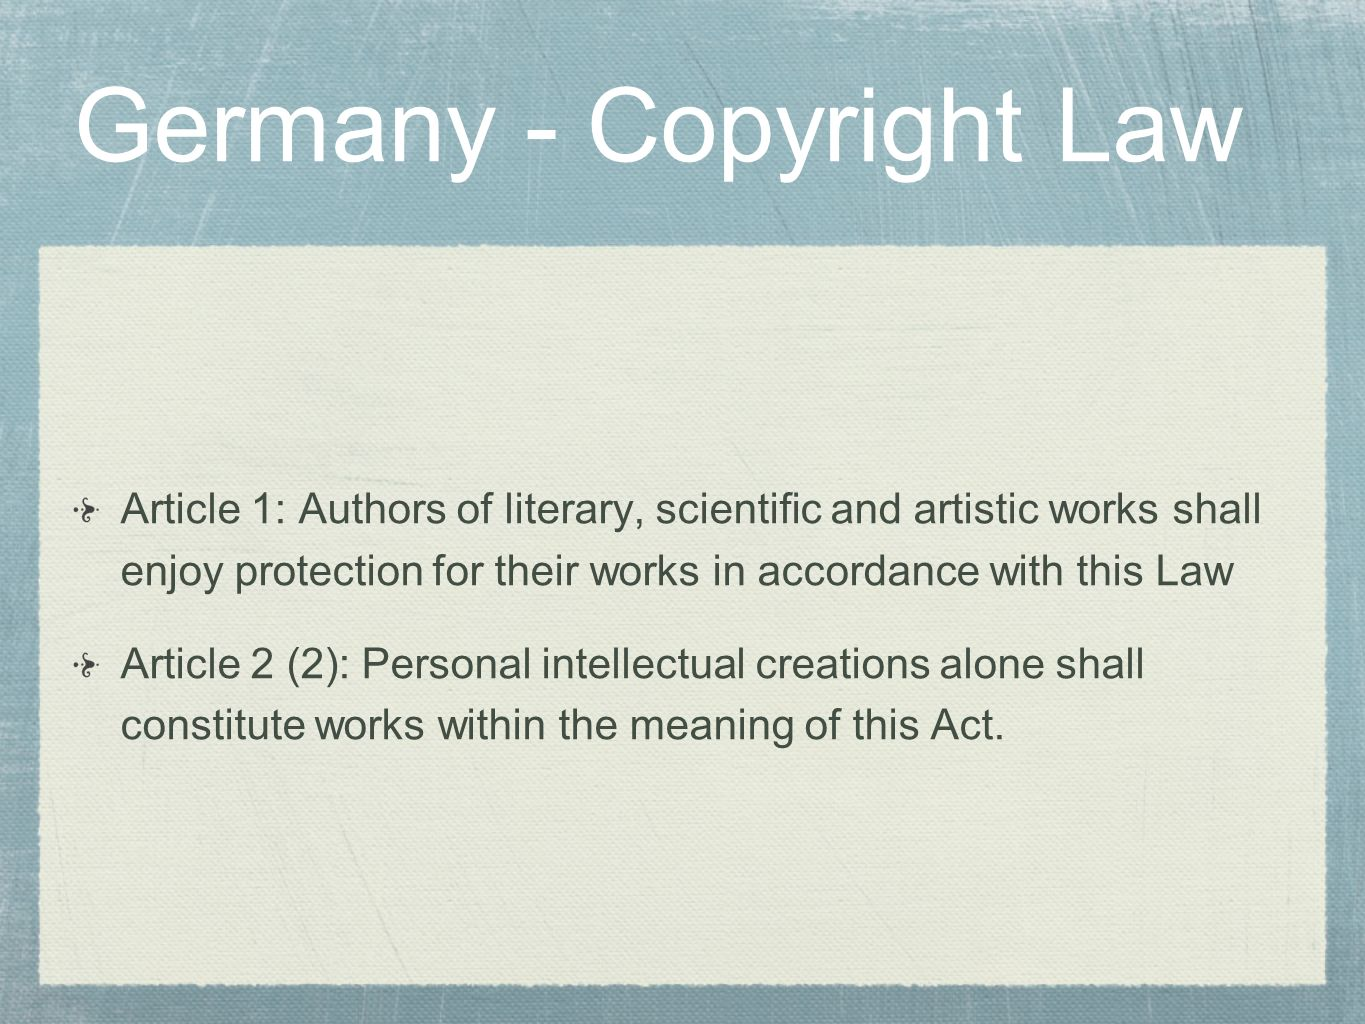 Germany - Copyright Law